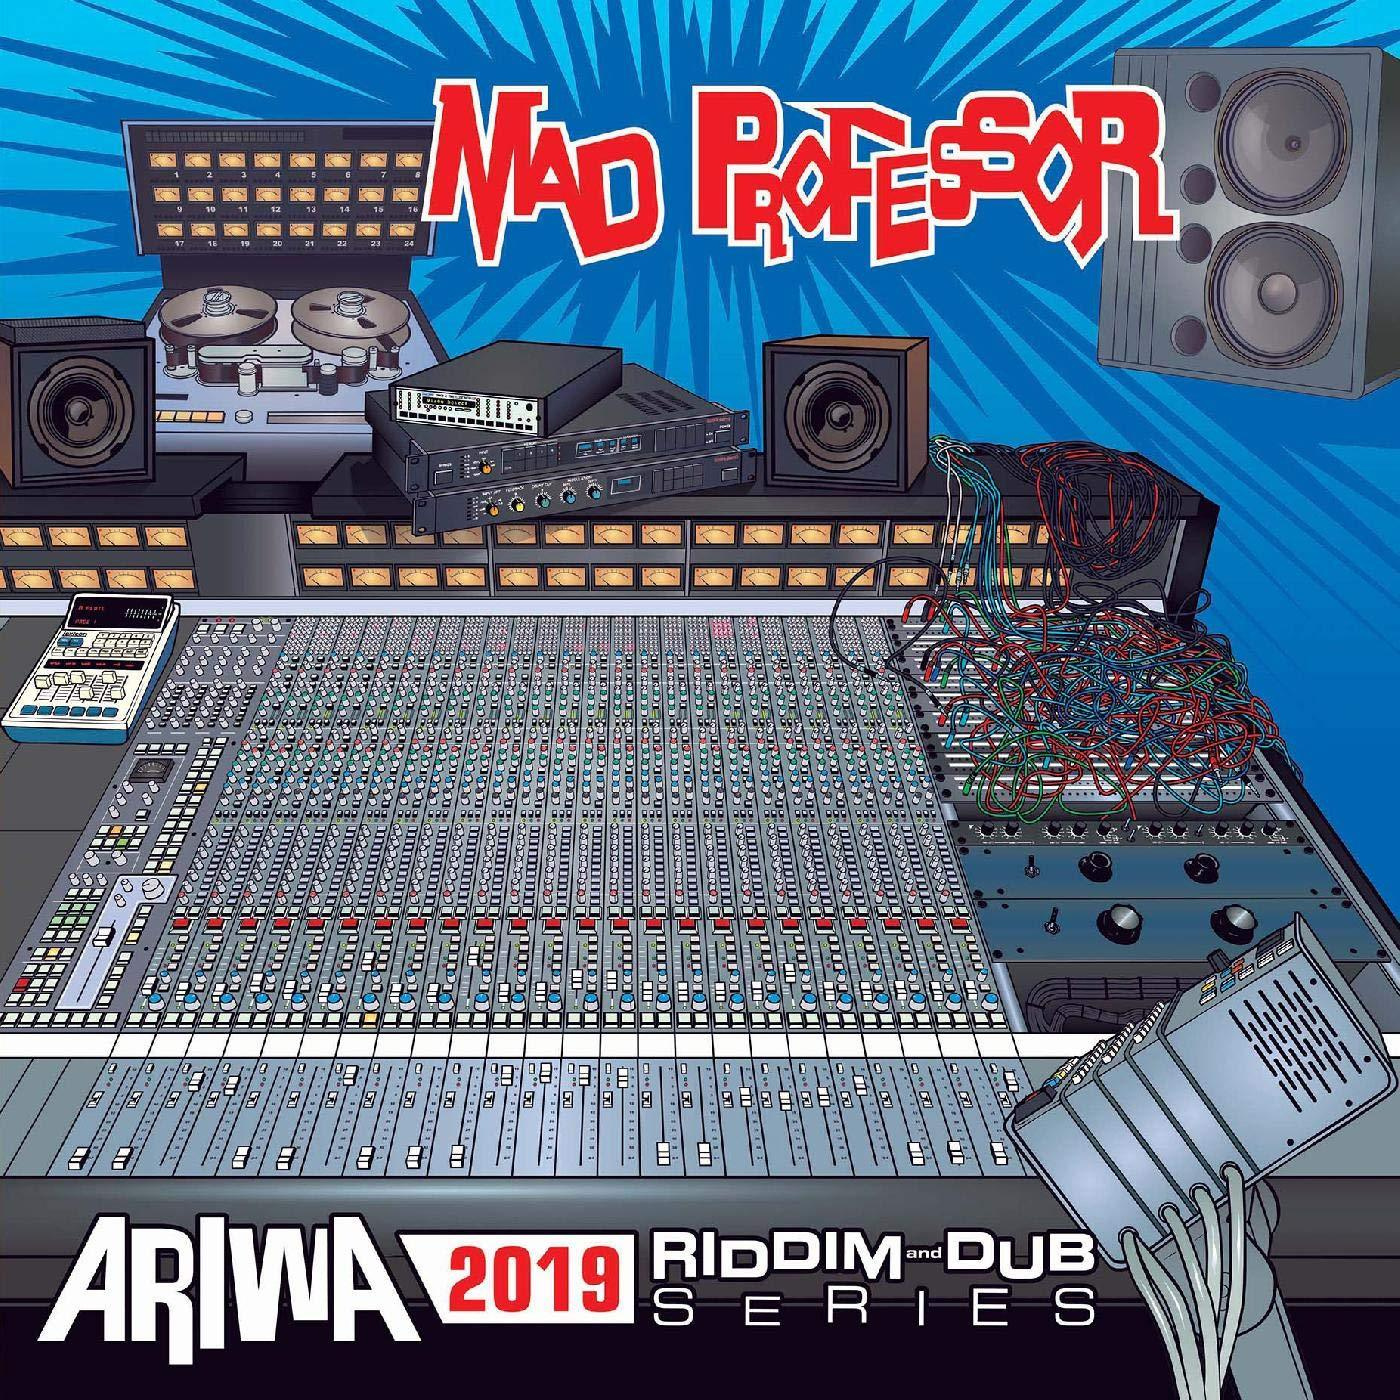 Mad Professor - Ariwa Riddim And Dub 2019 [LP] - Urban Vinyl | Records, Headphones, and more.